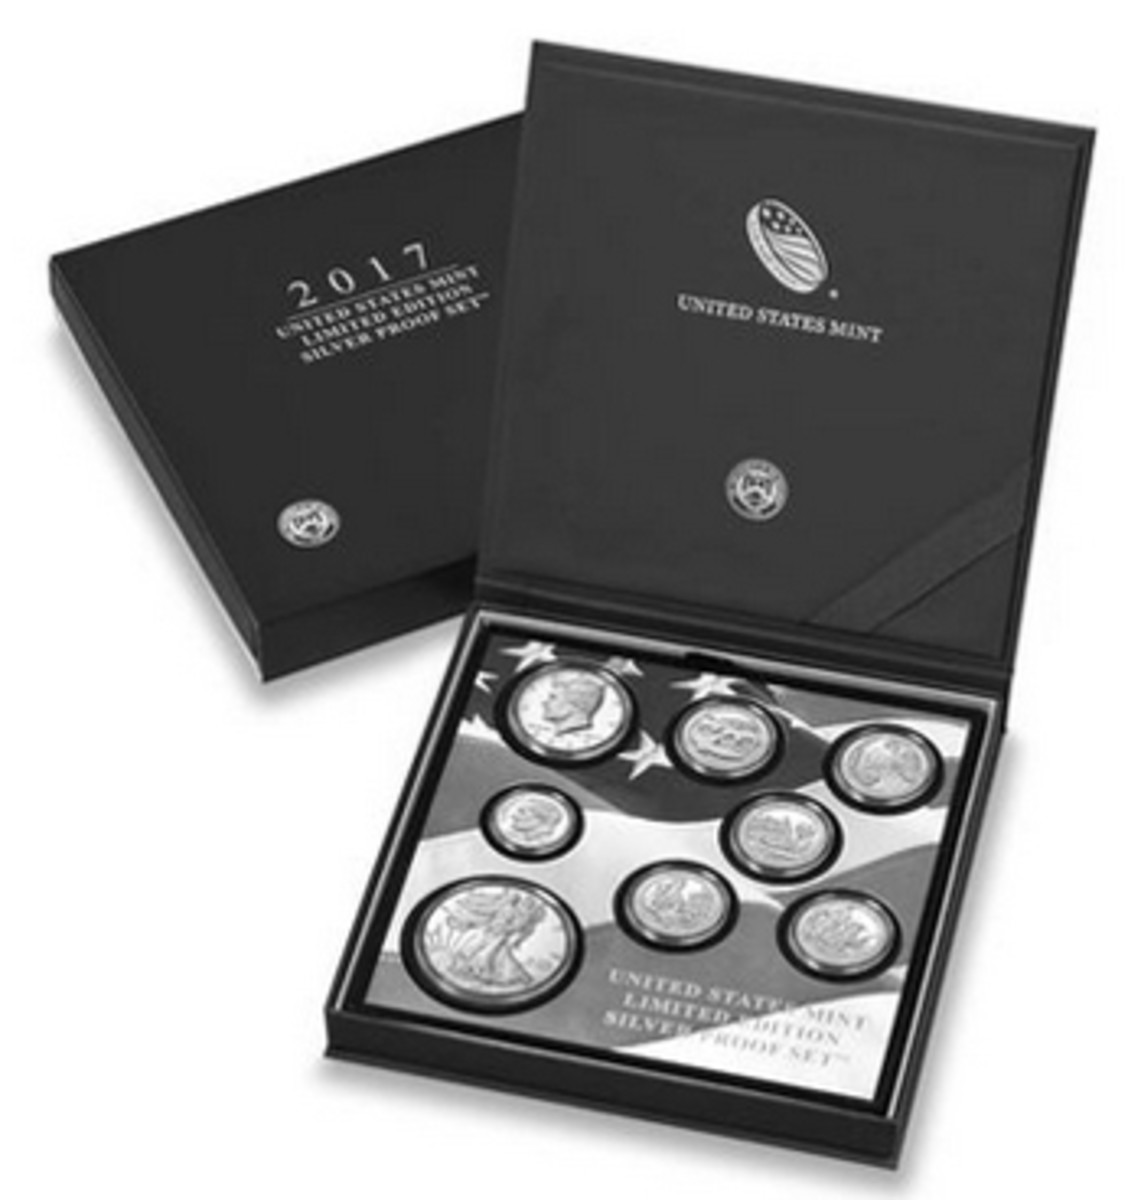 The 2017 Limited Edition Silver Proof Set, containing a 2017-S proof silver American Eagle, will be offered by the Mint on Oct. 5.